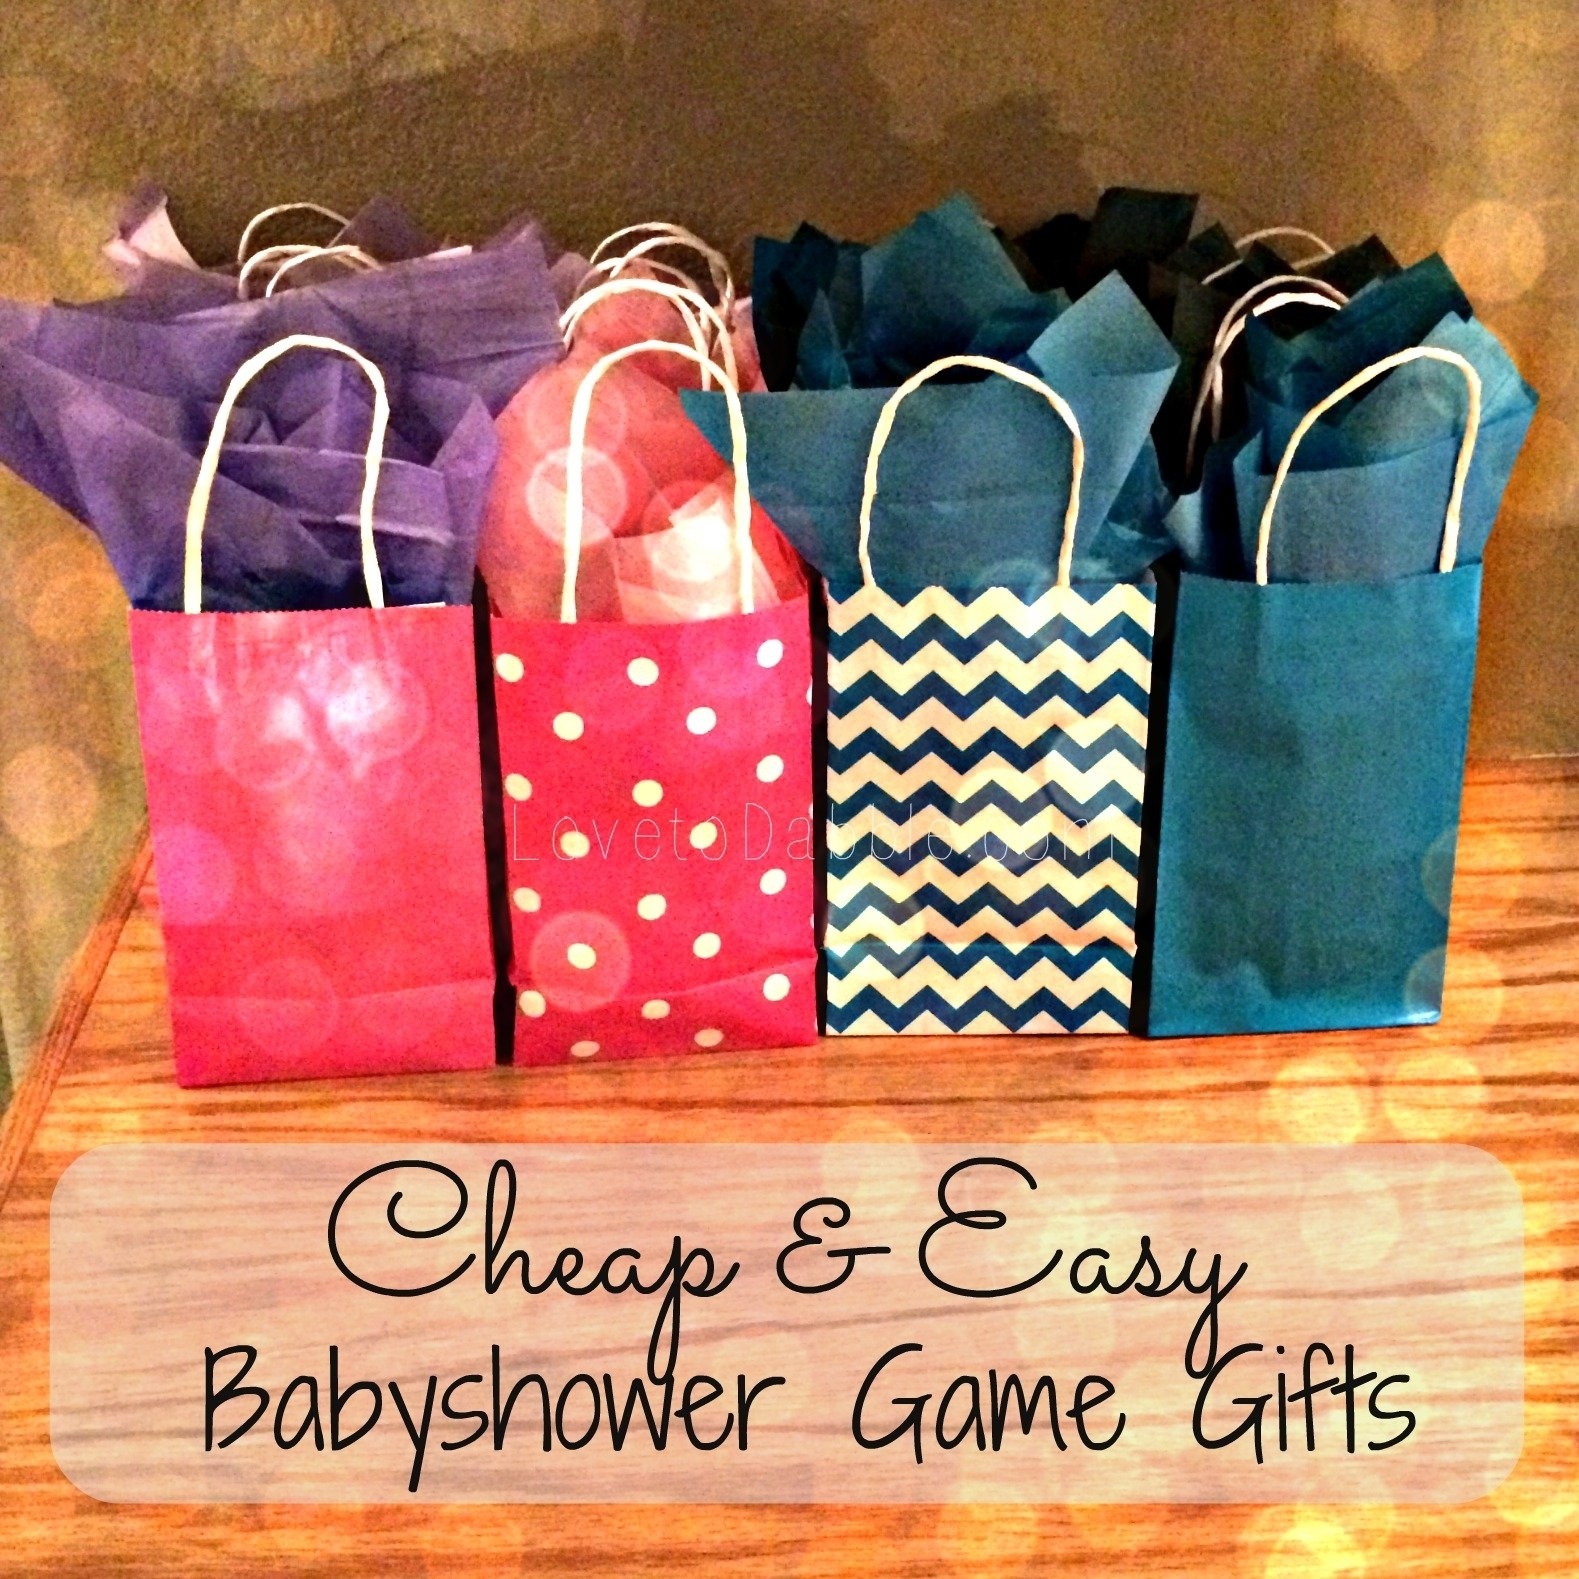 10 Pretty Ideas For Baby Shower Prizes bridal party bingo wedding shower prizes gift ideas for guests door 2020